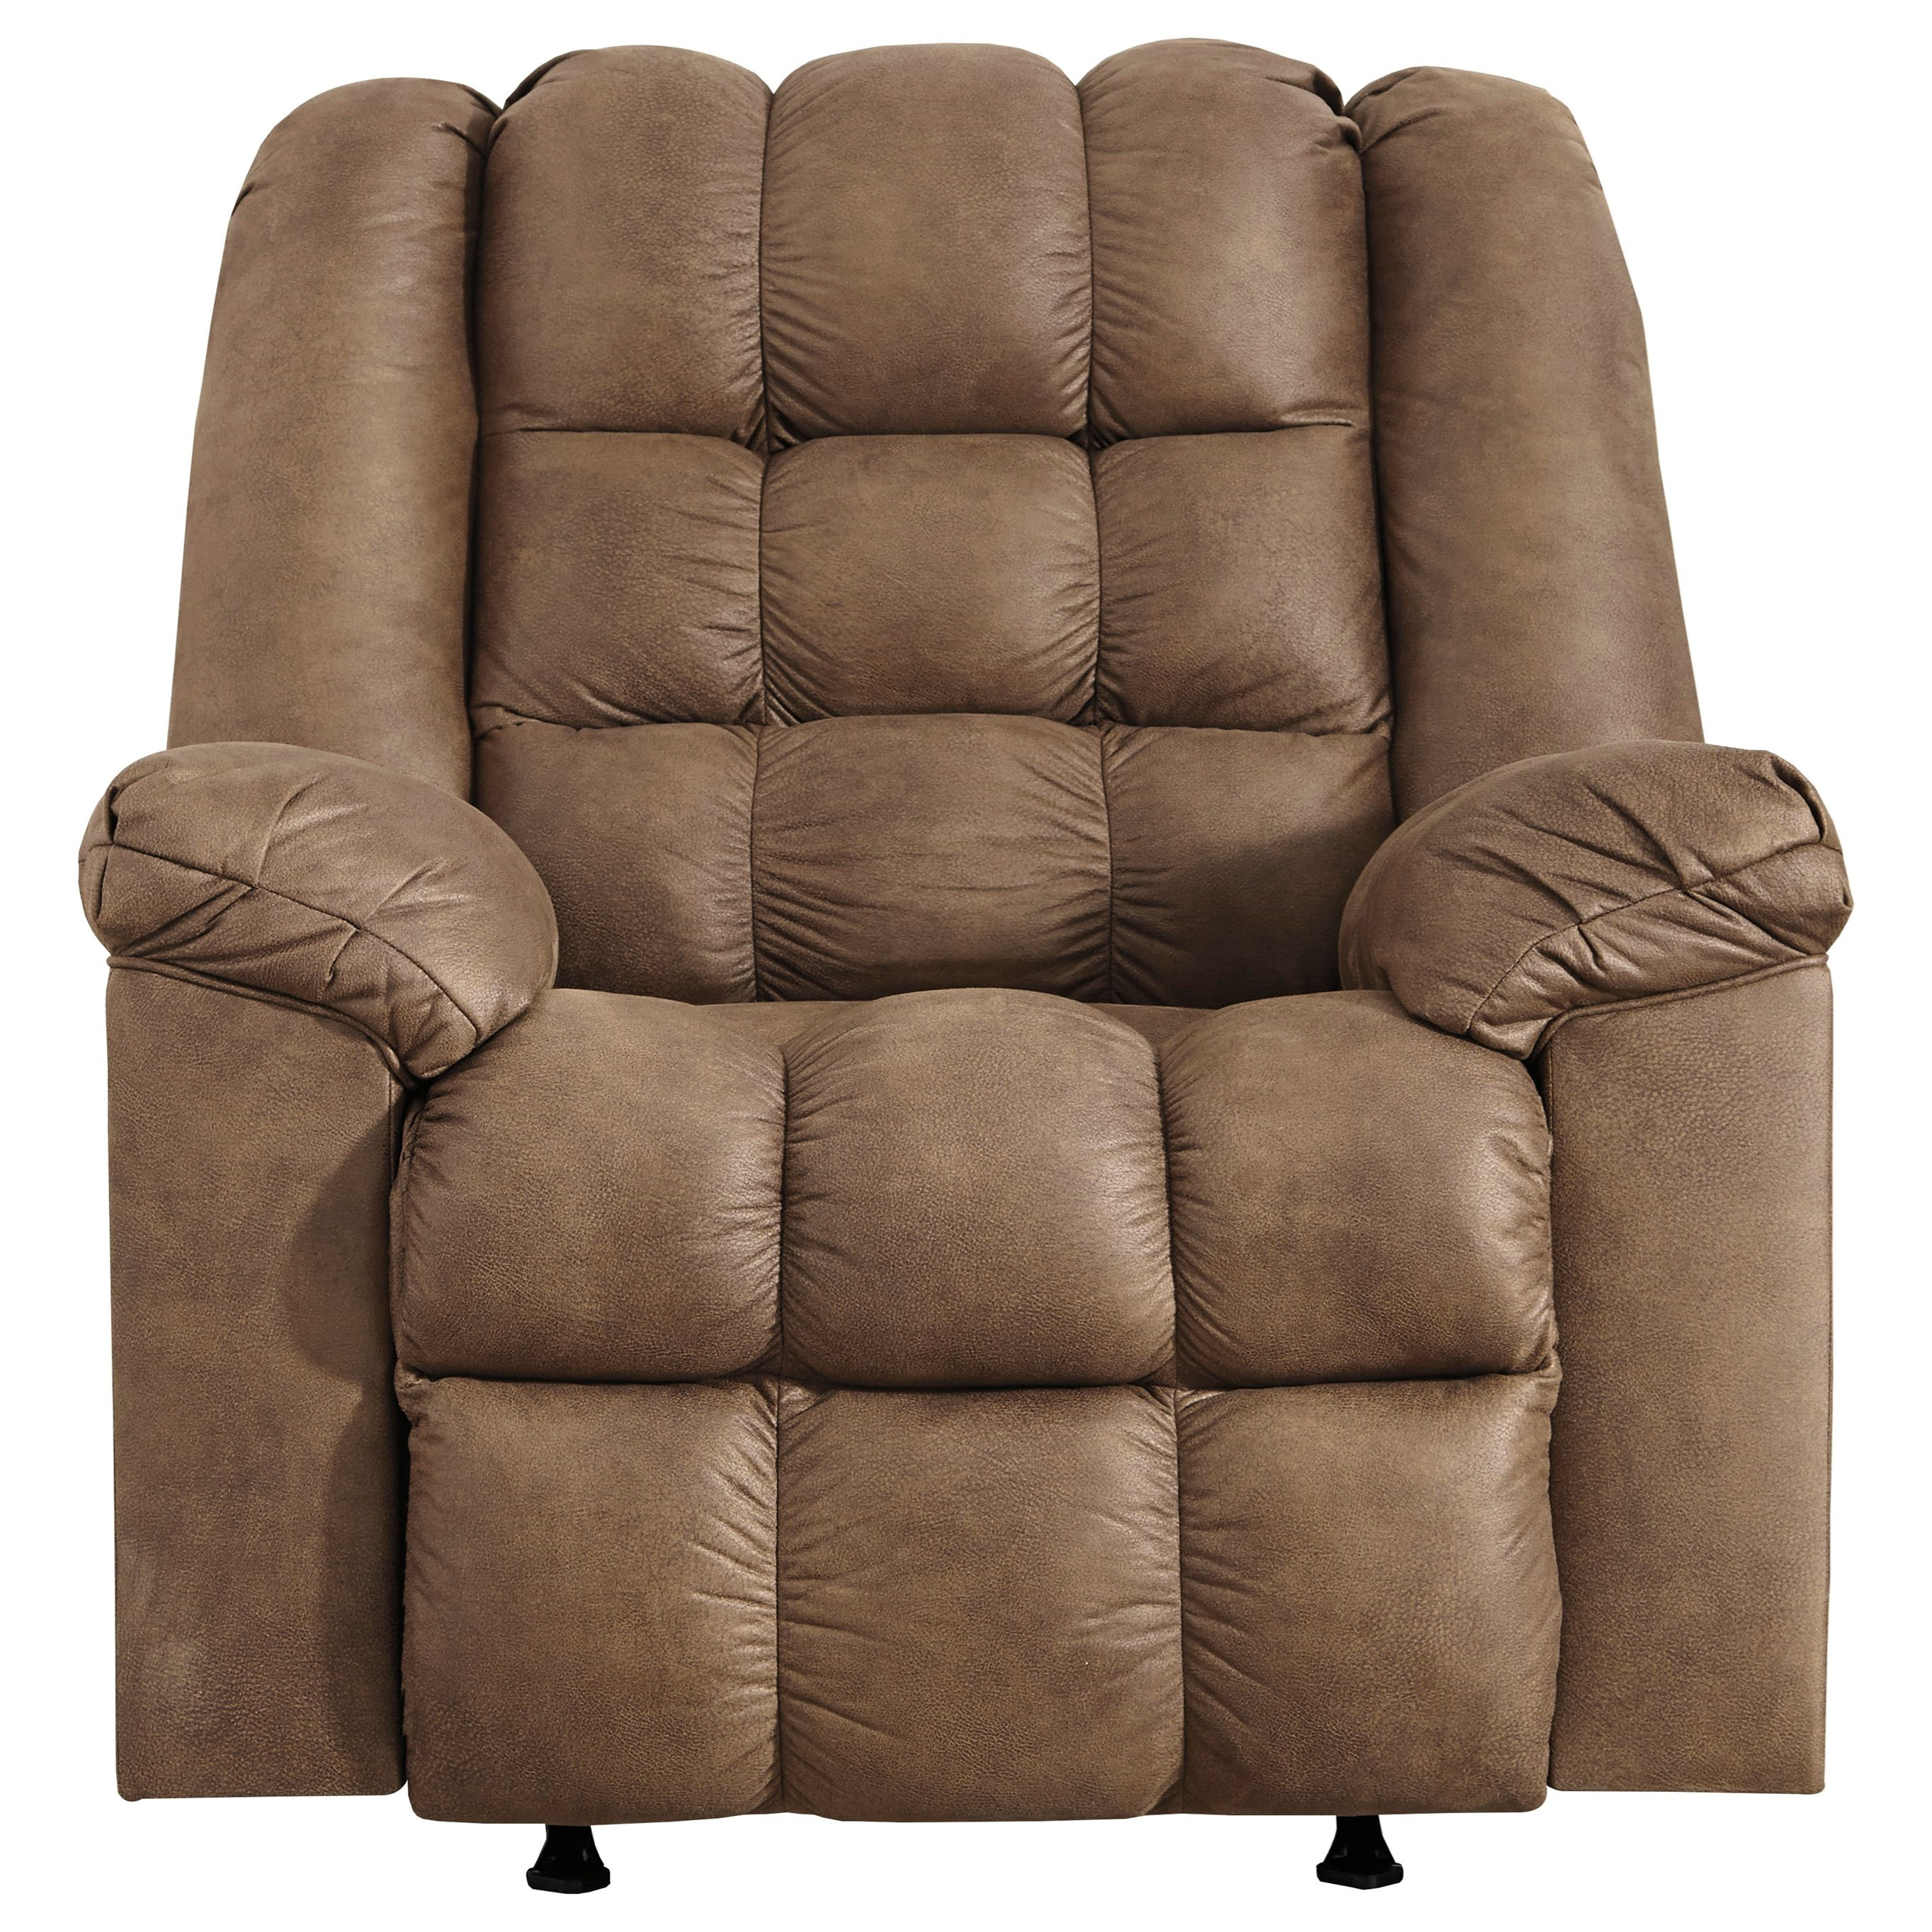 Adrano Rocker Recliner with Heat and Massage by Signature Design by Ashley at Furniture and ApplianceMart